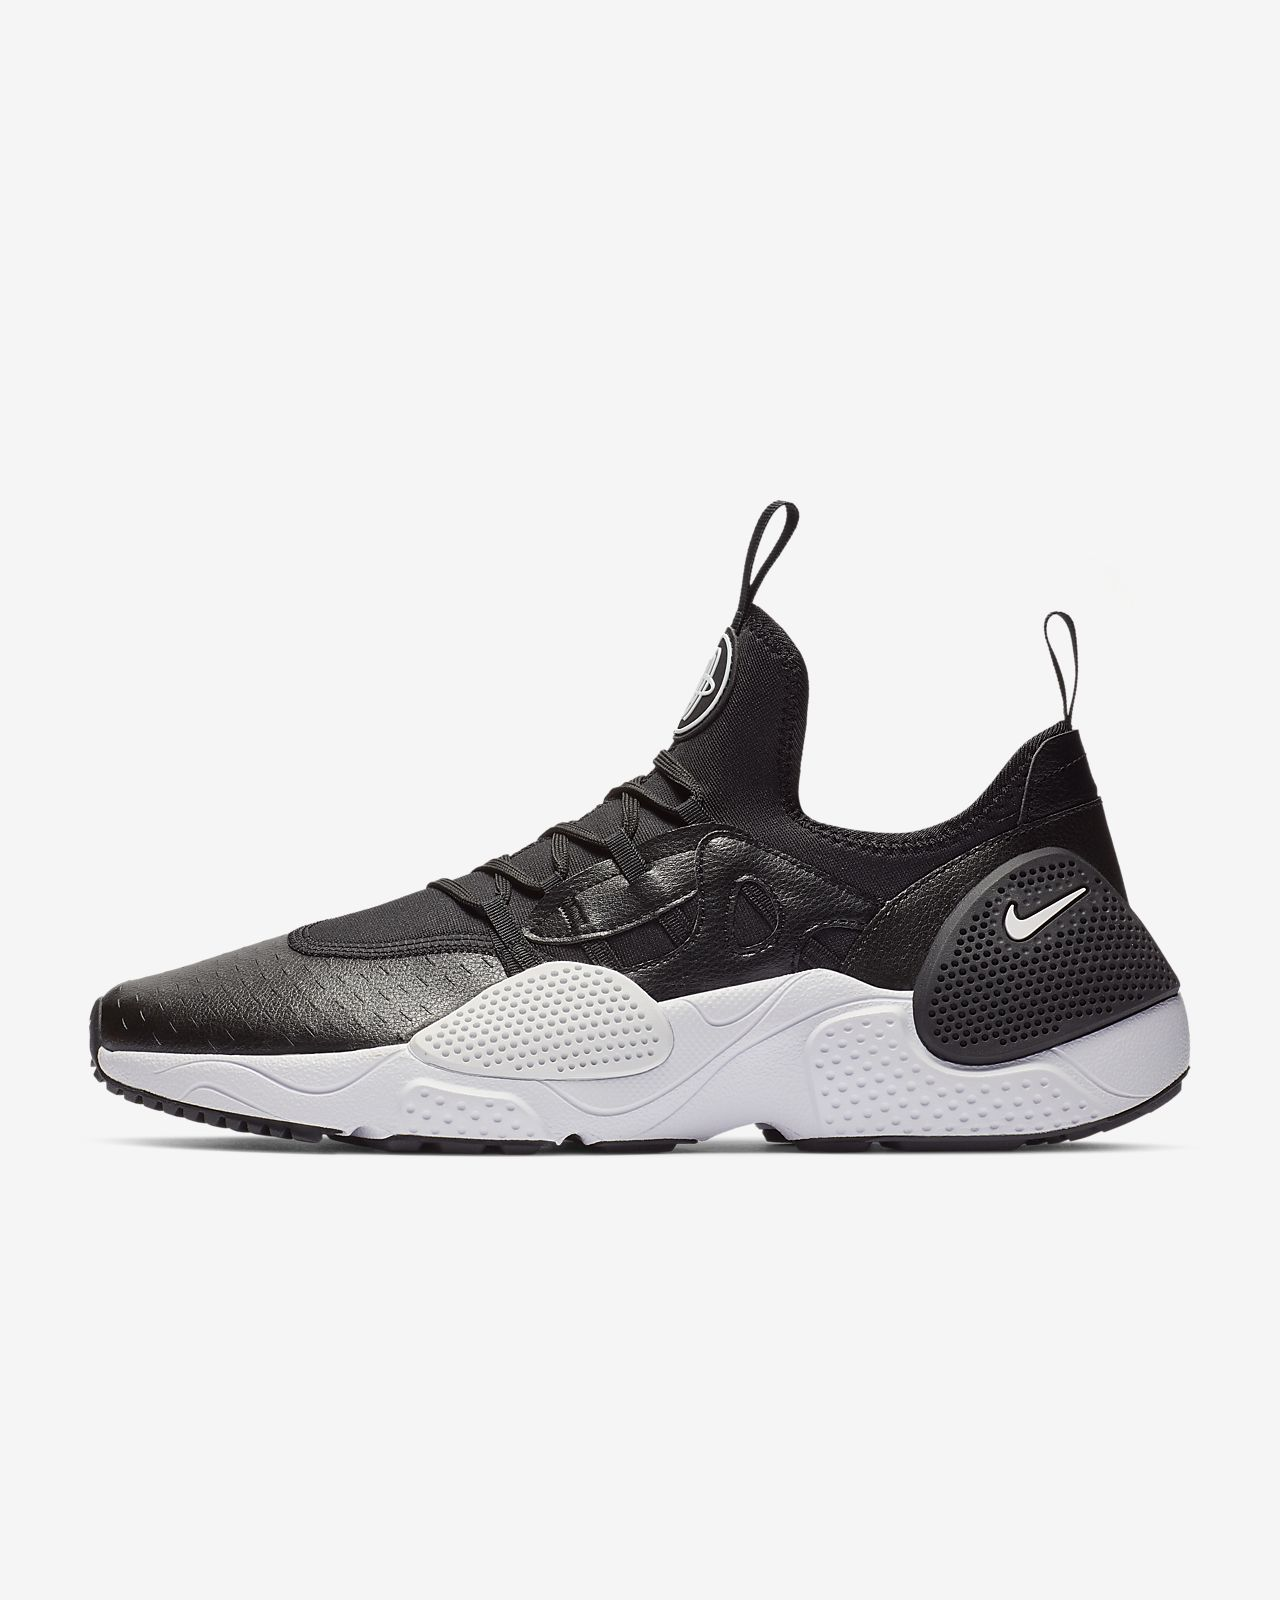 buy popular a8193 c0f93 Nike Huarache E.D.G.E. Men's Shoe